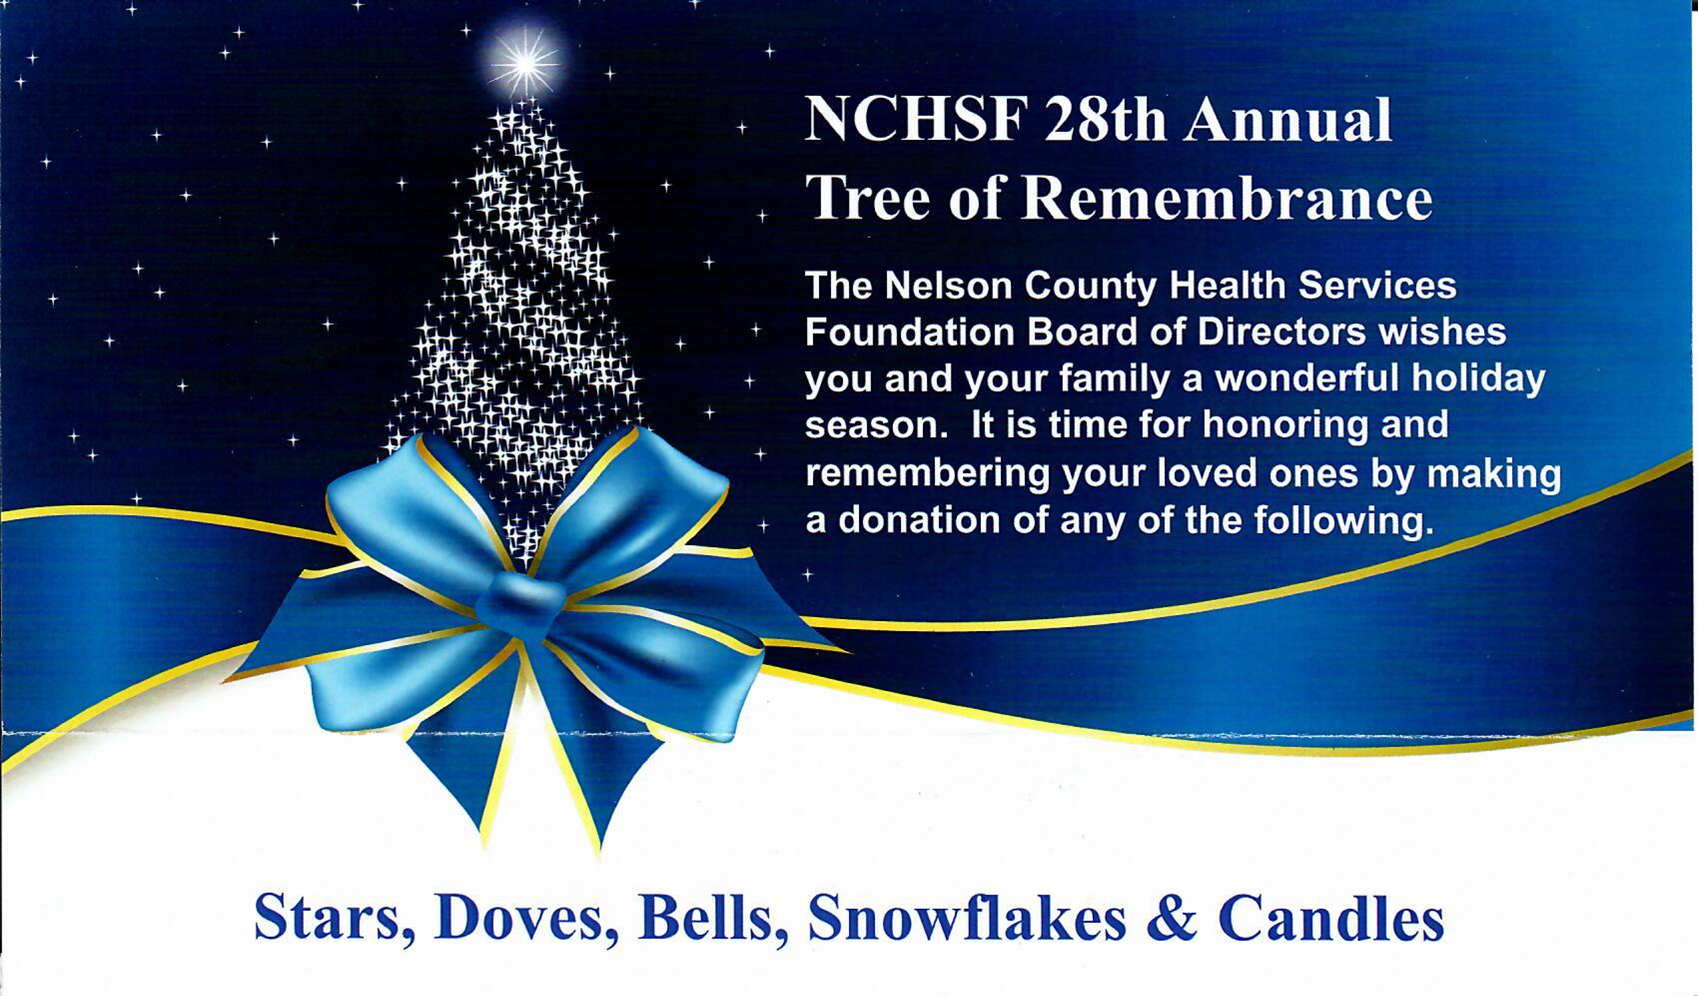 NCHSF 28th Annual Tree of Remembrance